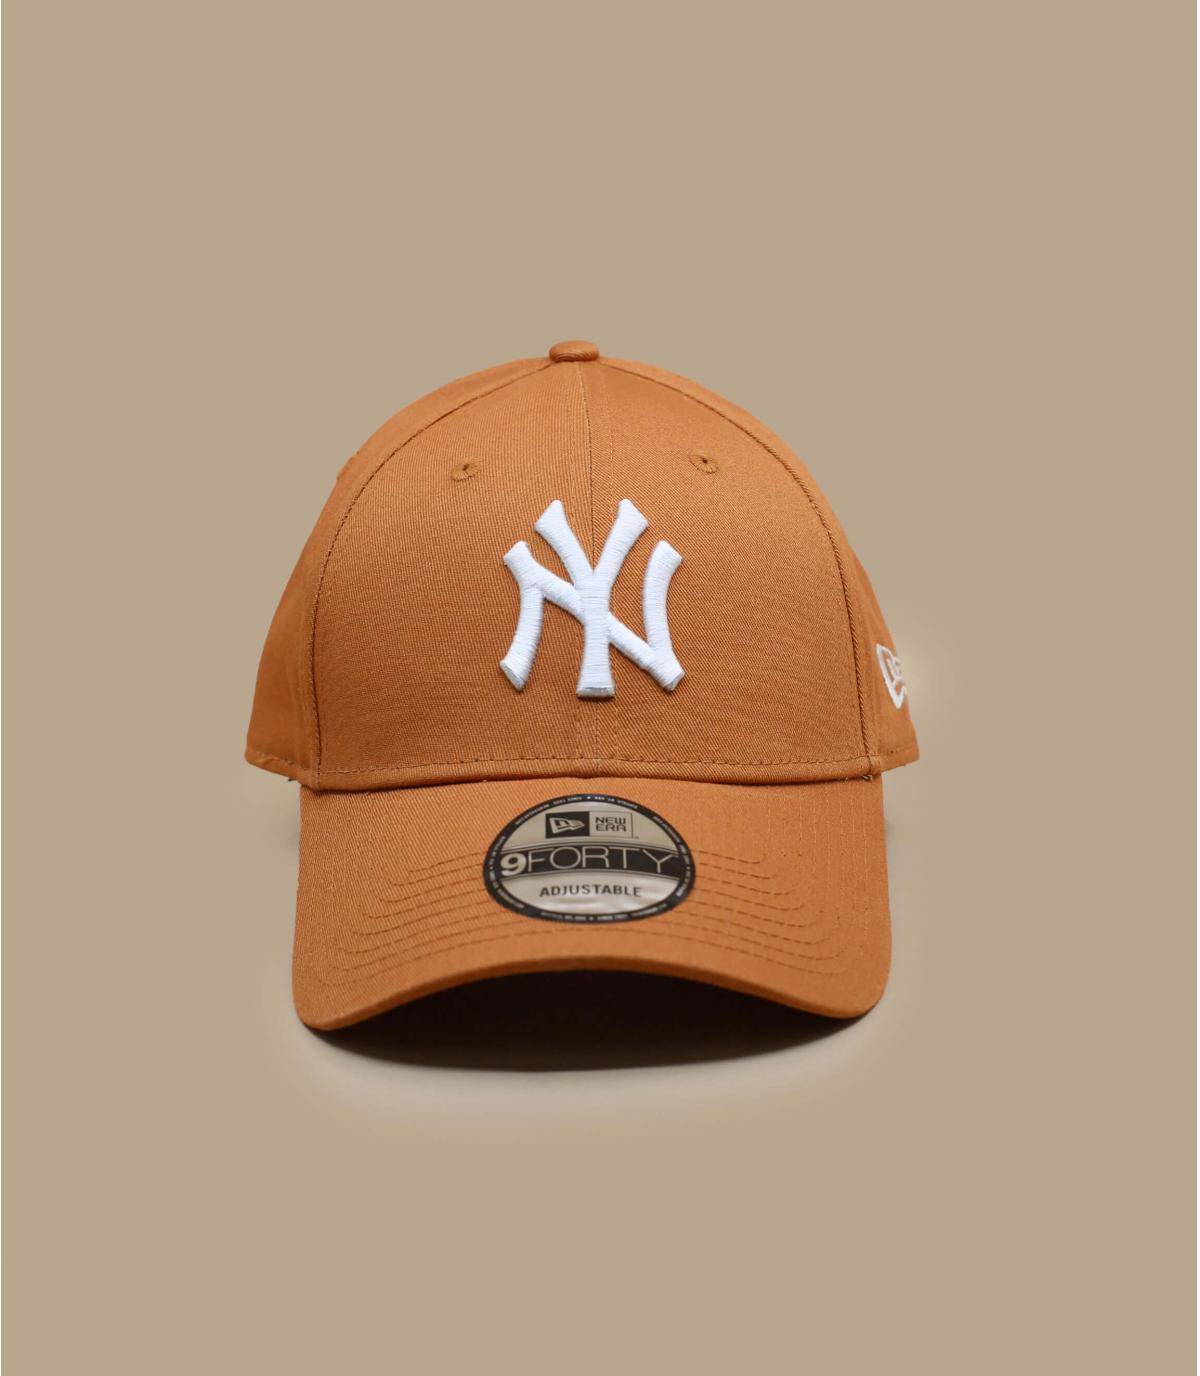 casquette NY beige blanc